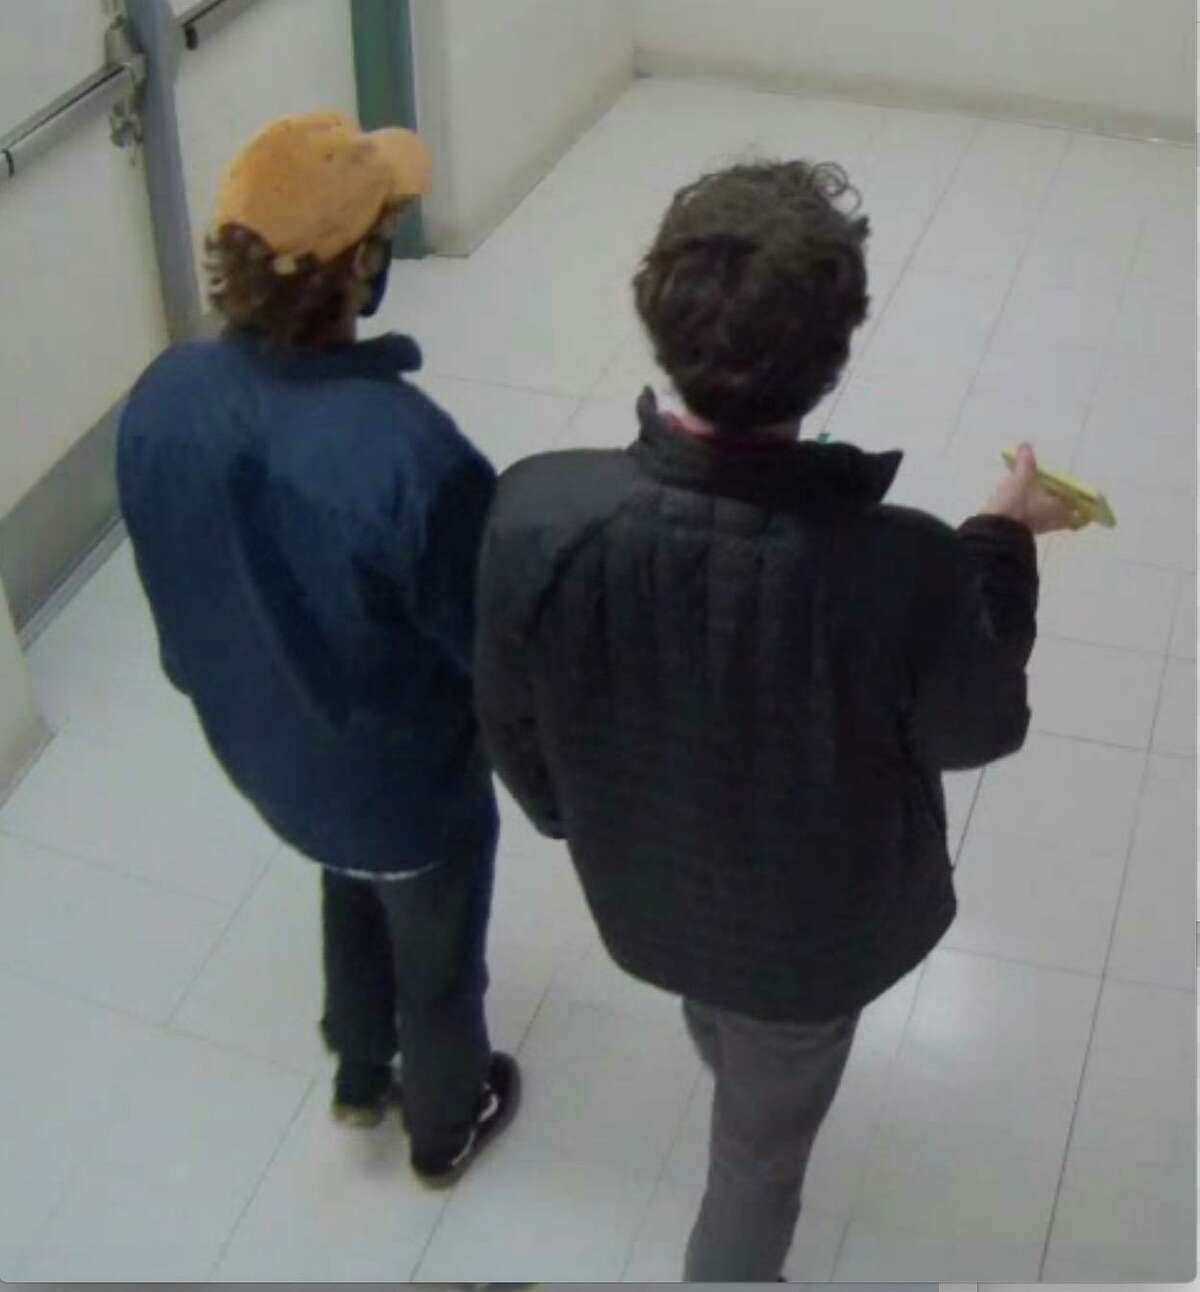 Darien Police released these photos of suspects who allegedly broke into Middlesex Middle School in Darien in late November on Jan. 13 asking the public's help identifying them. Police said they had id'd the suspects, who police said are not juveniles, as of Thursday, Jan. 14.